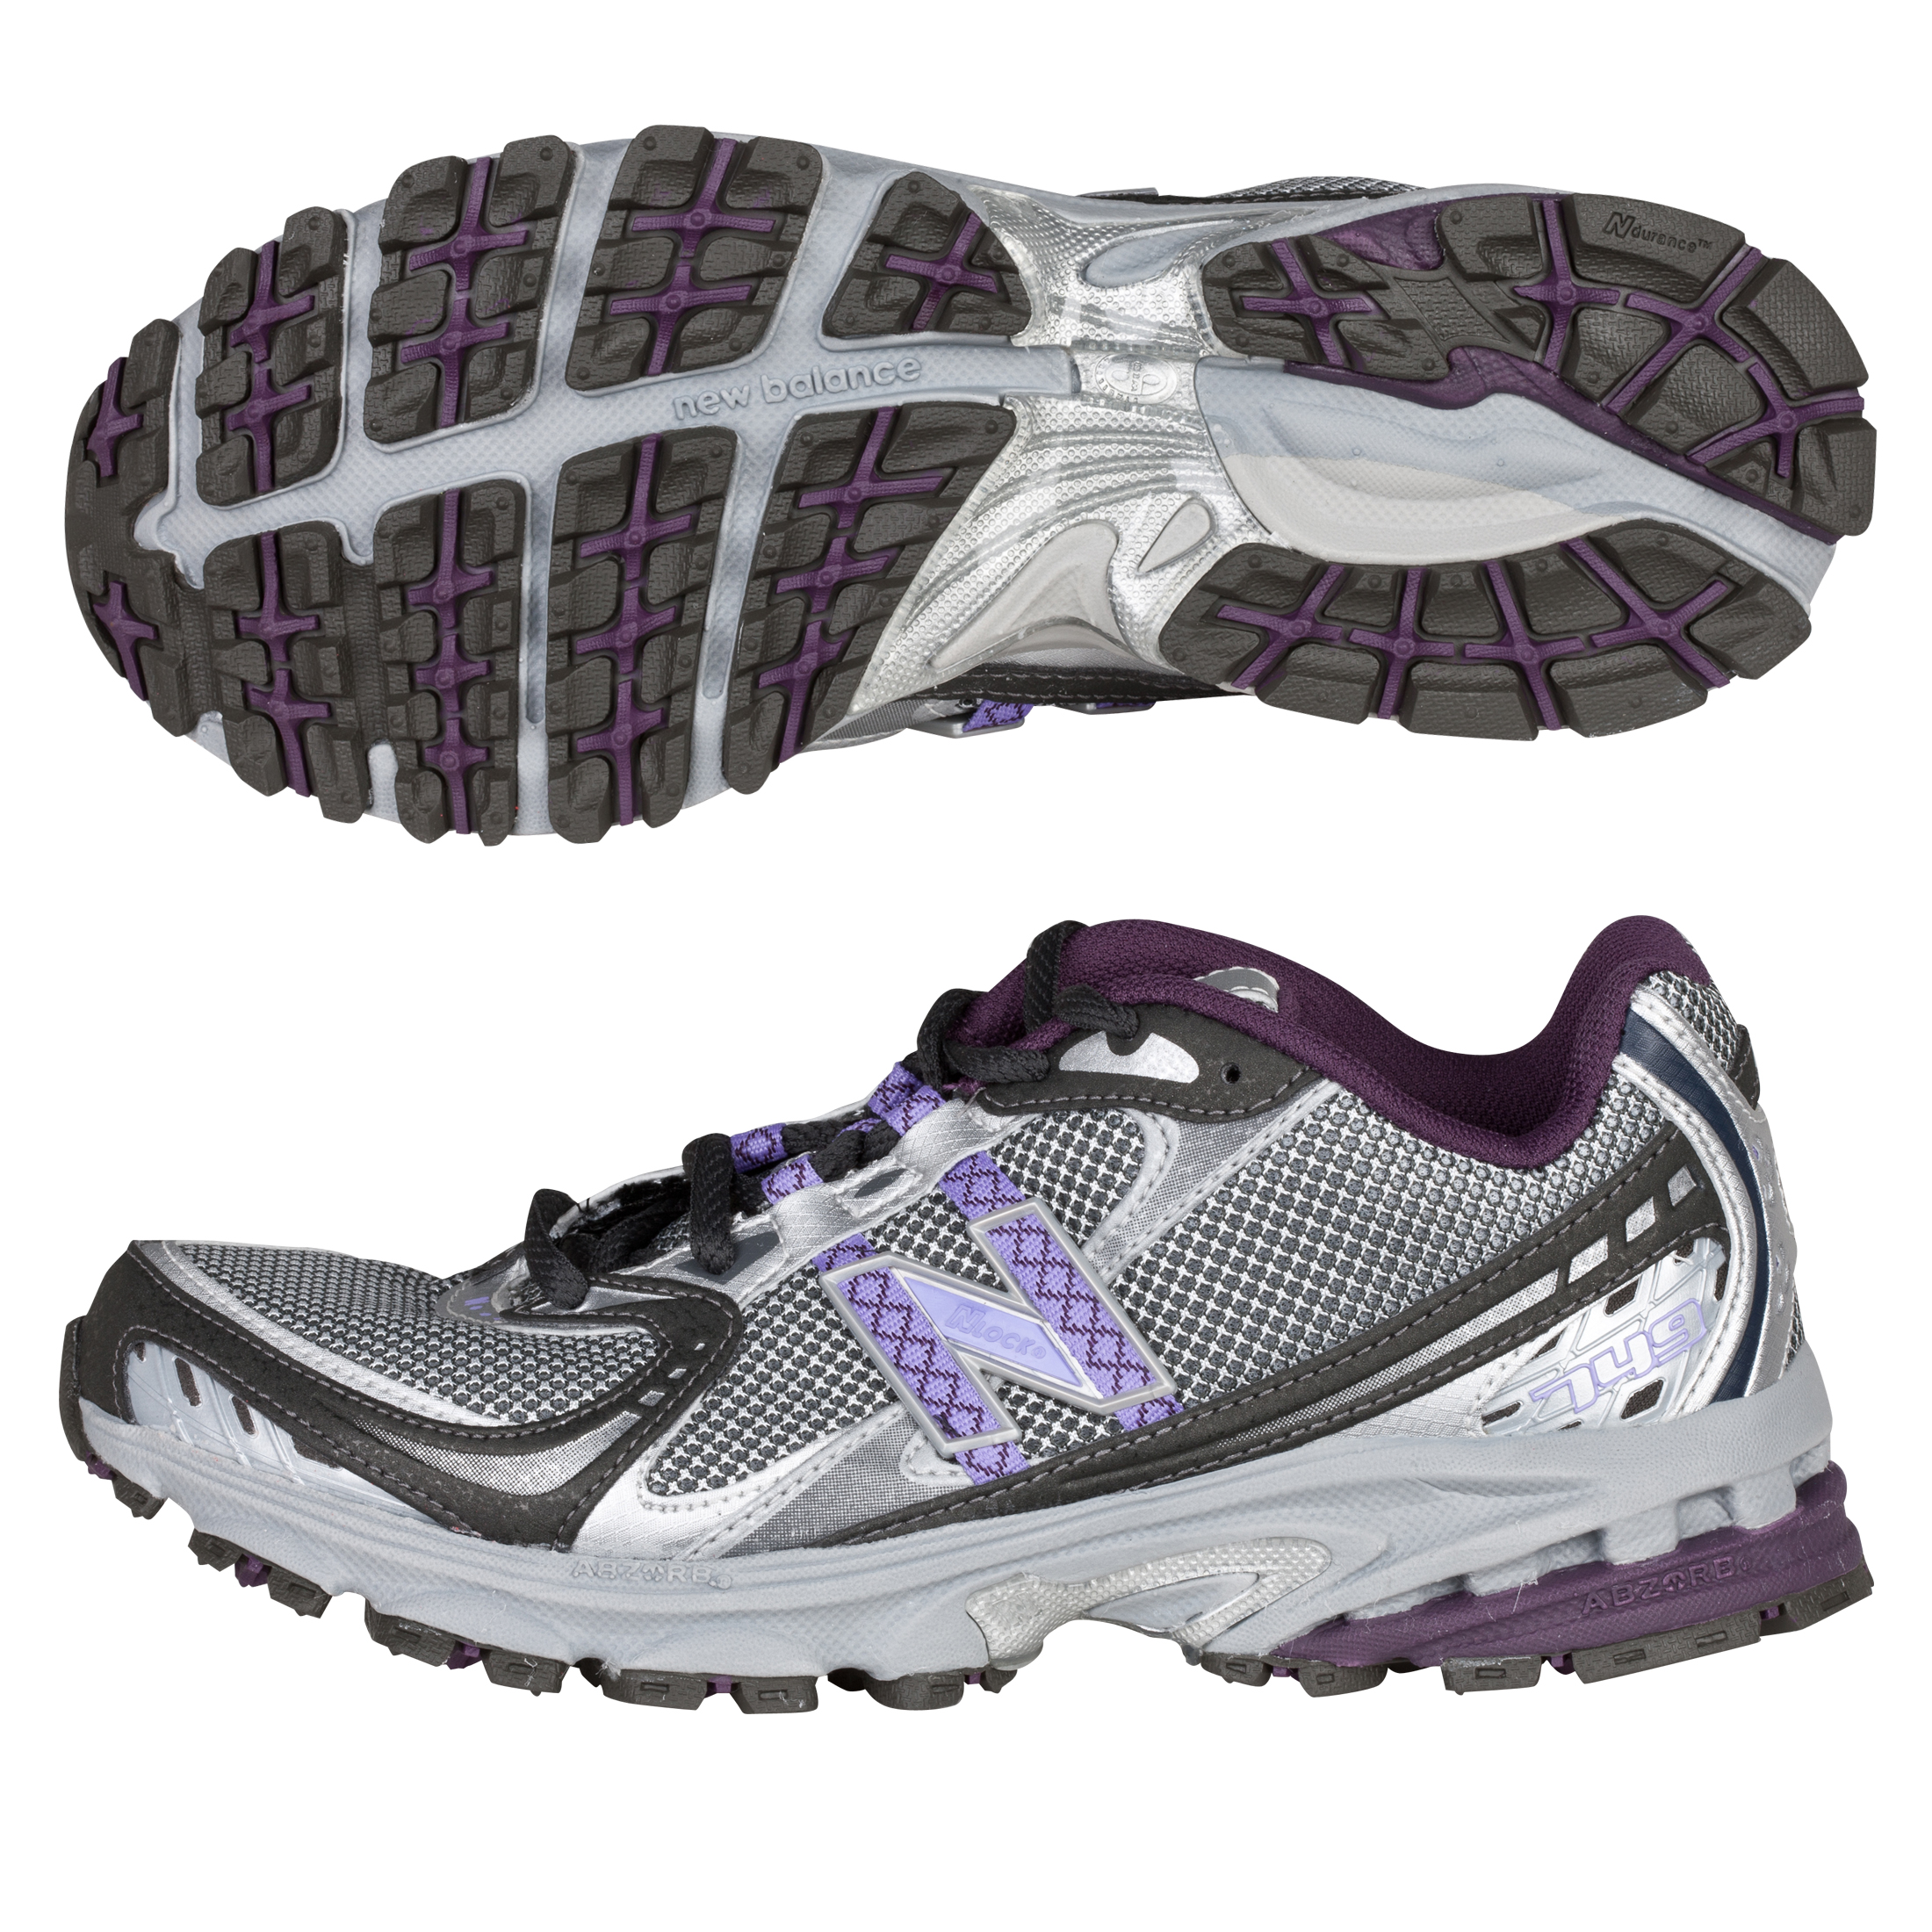 New Balance 749 Running Trainers - Grey/Purple - Womens